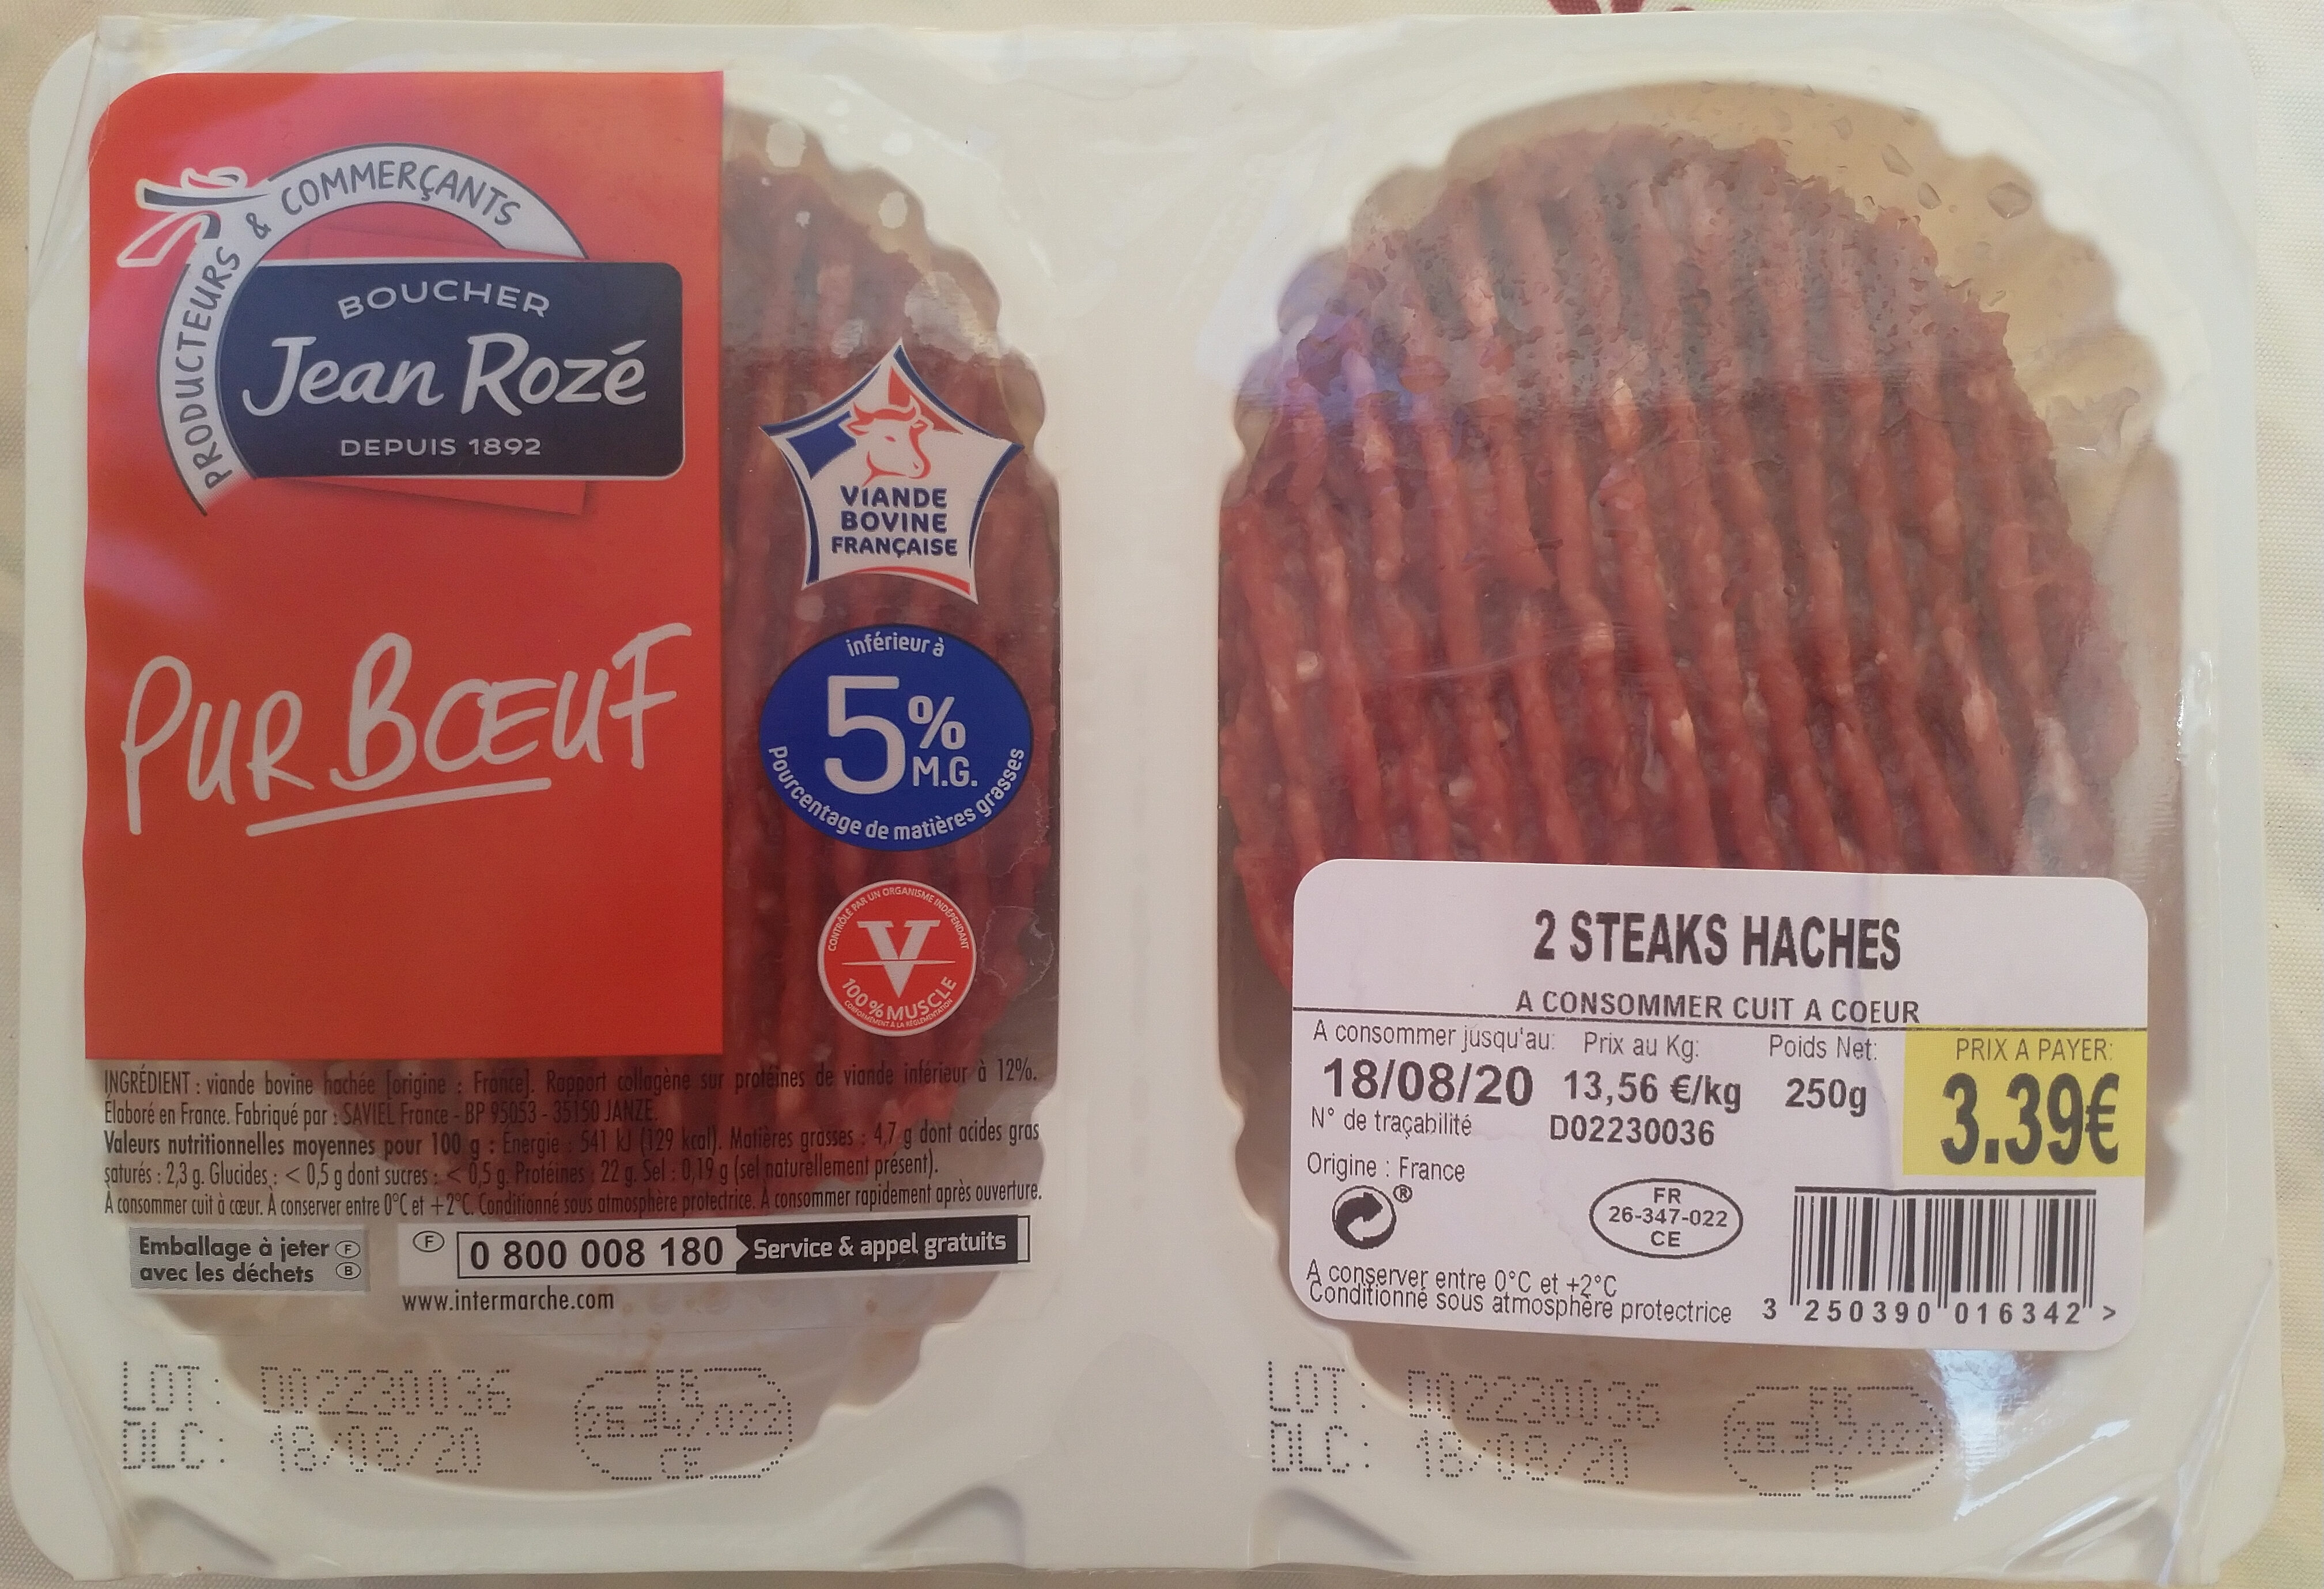 2 Steaks Hachés (5 % MG), Pur Bœuf - Product - fr